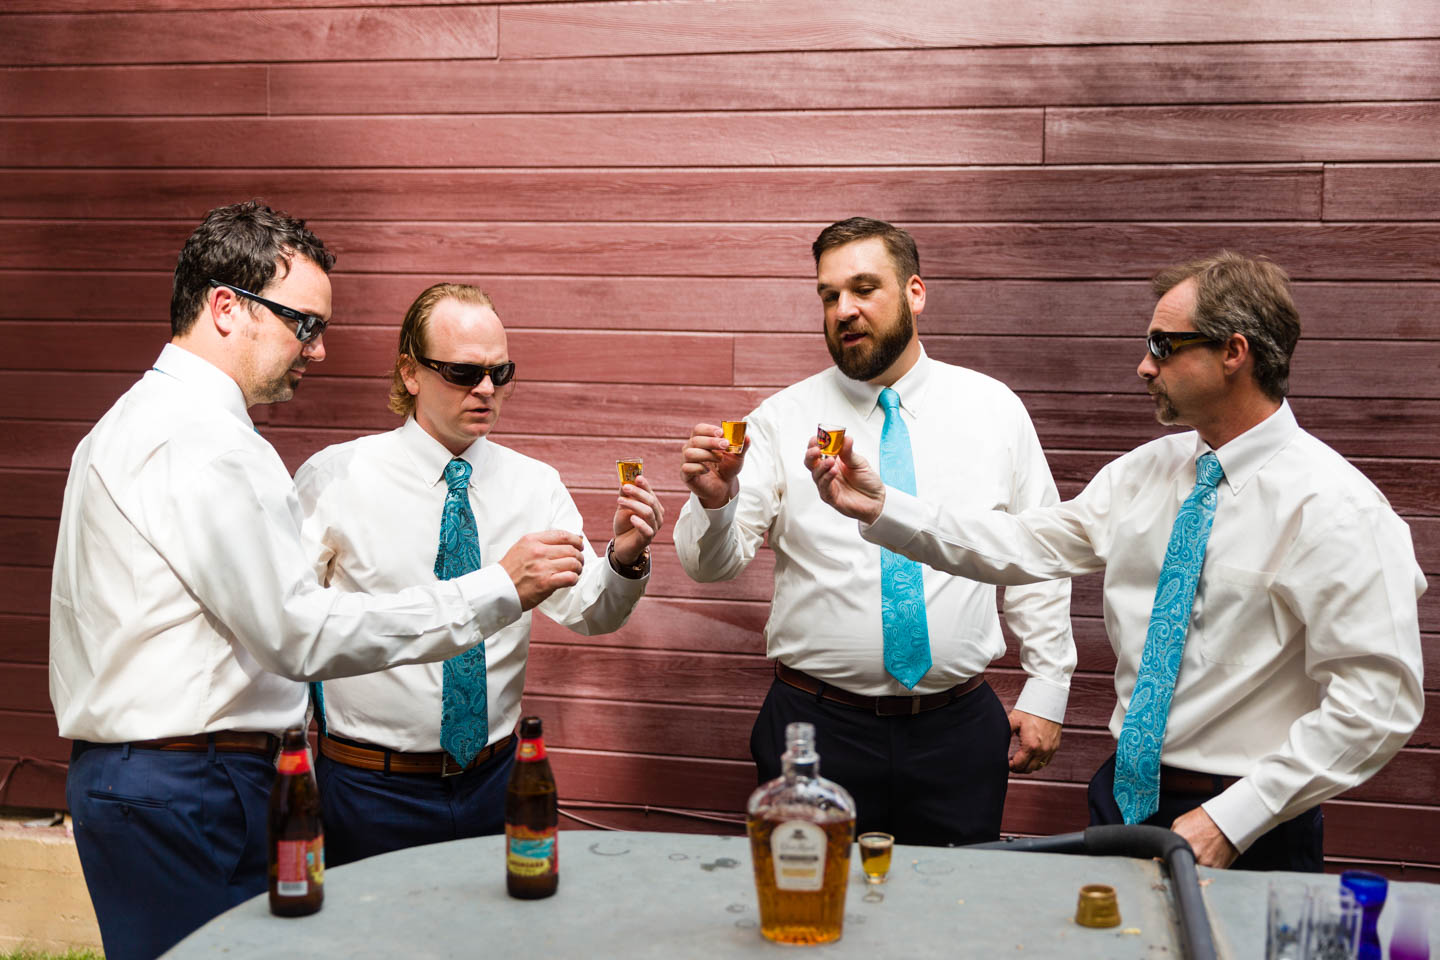 Whiskey shots before the wedding